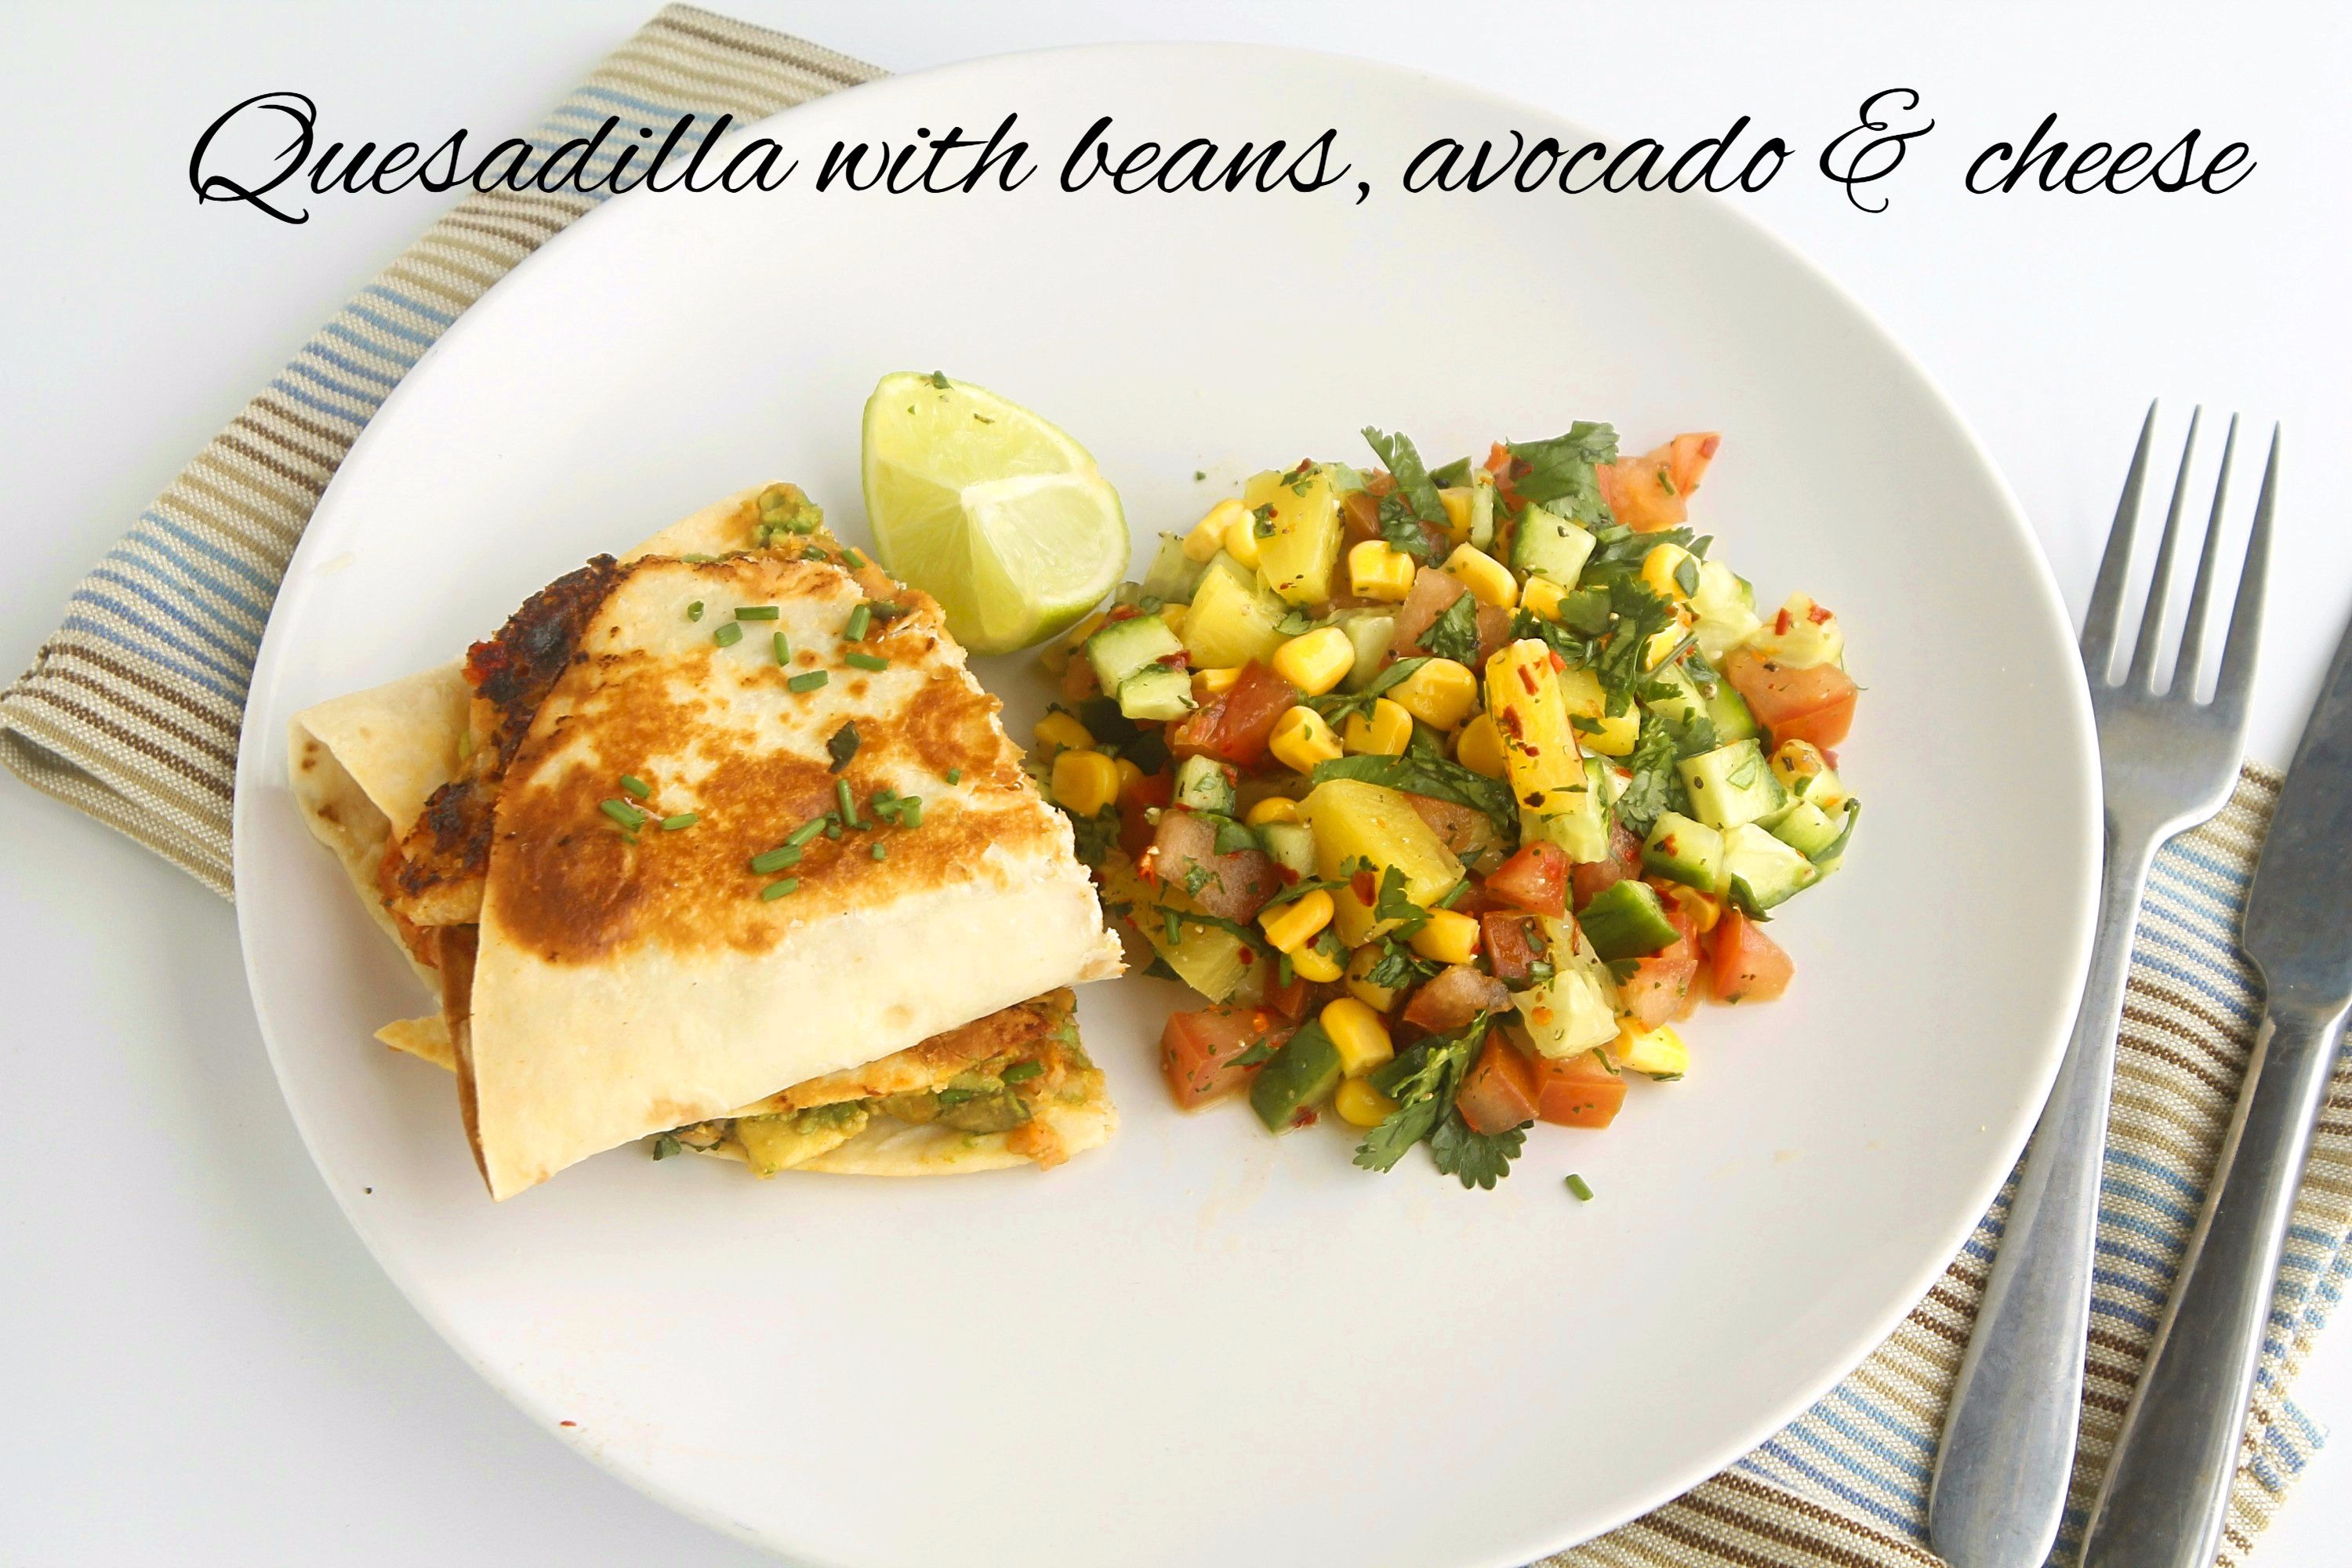 Quesadilla with beans, avocado and cheese